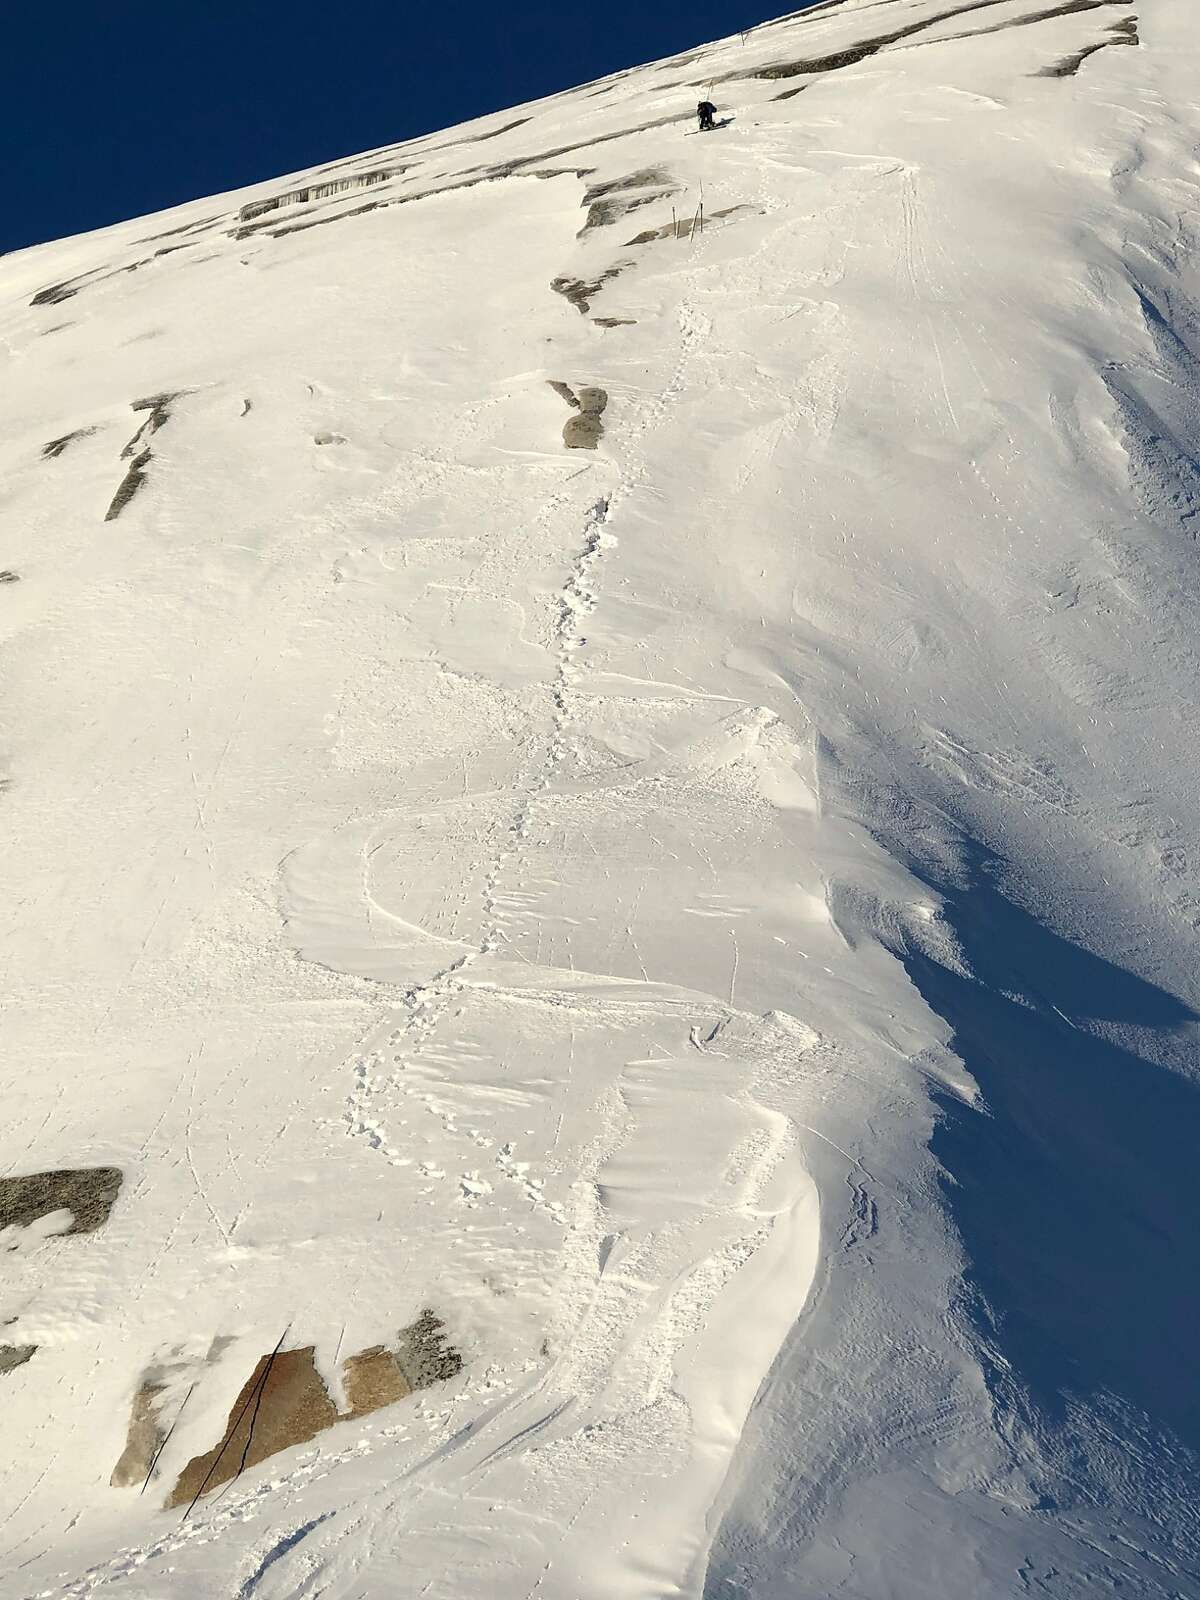 Zach Milligan works his way down the side of Half Dome during the ski descent